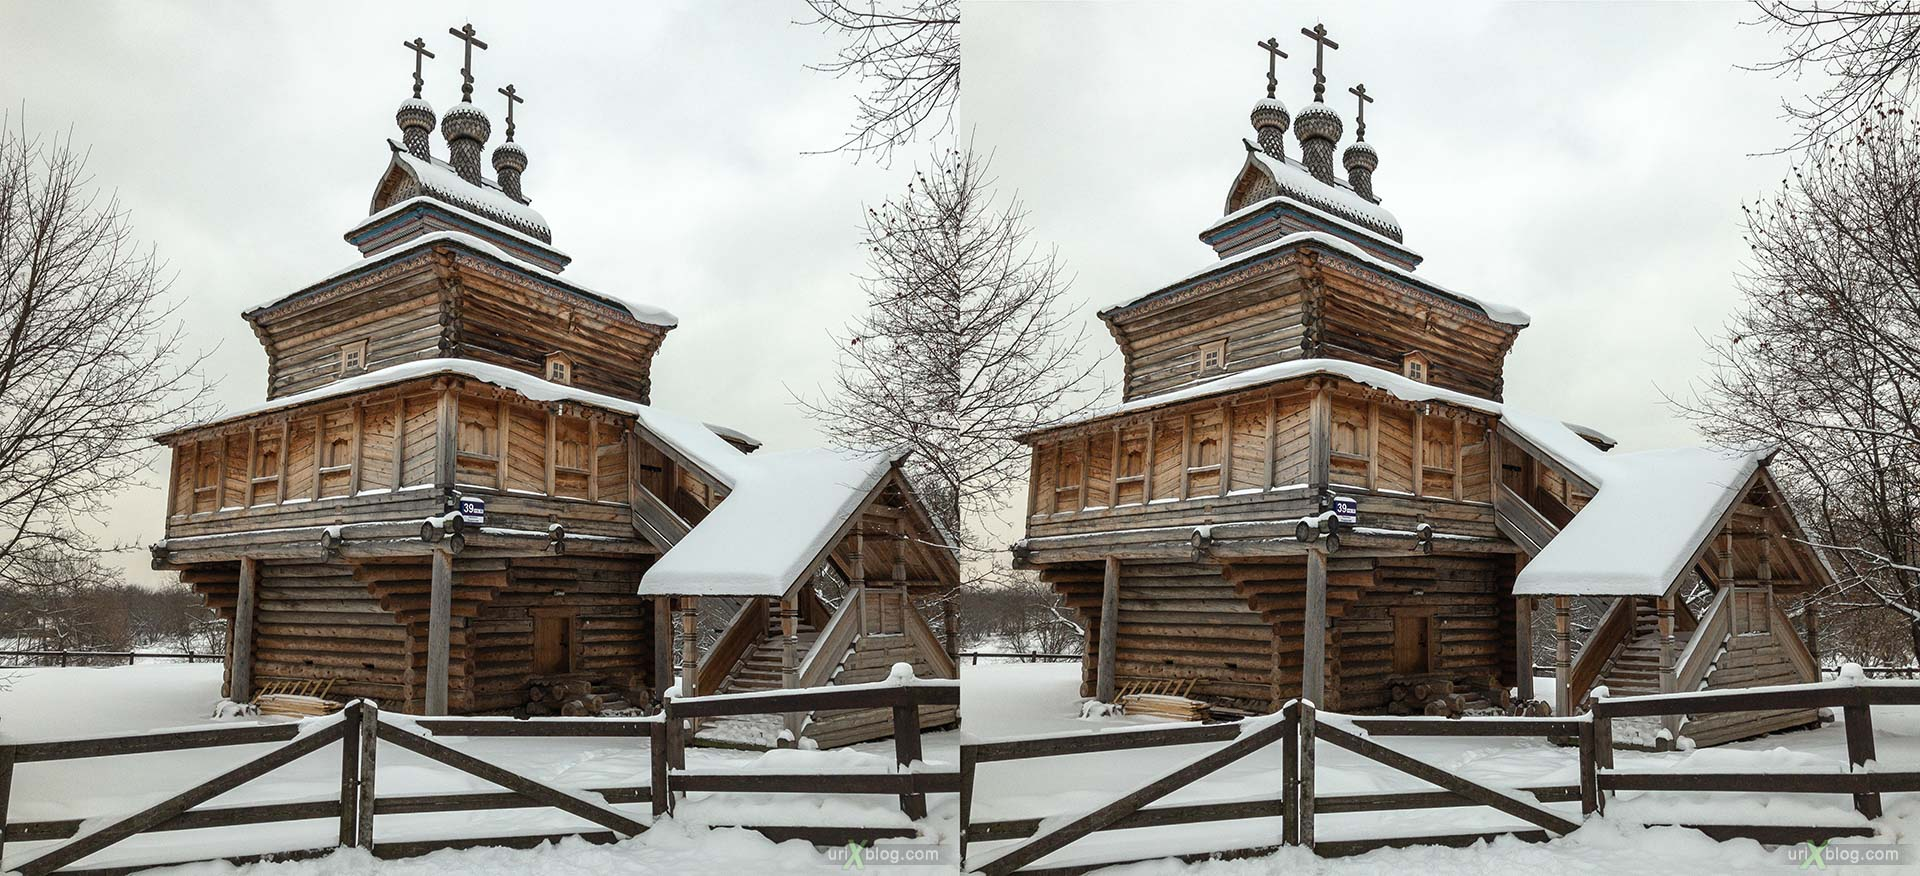 Russian Wooden Architecture, St George Church, Kolomenskoye, park, wooden building, winter, snow, Moscow, Russia, 3D, stereo pair, cross-eyed, crossview, cross view stereo pair, stereoscopic